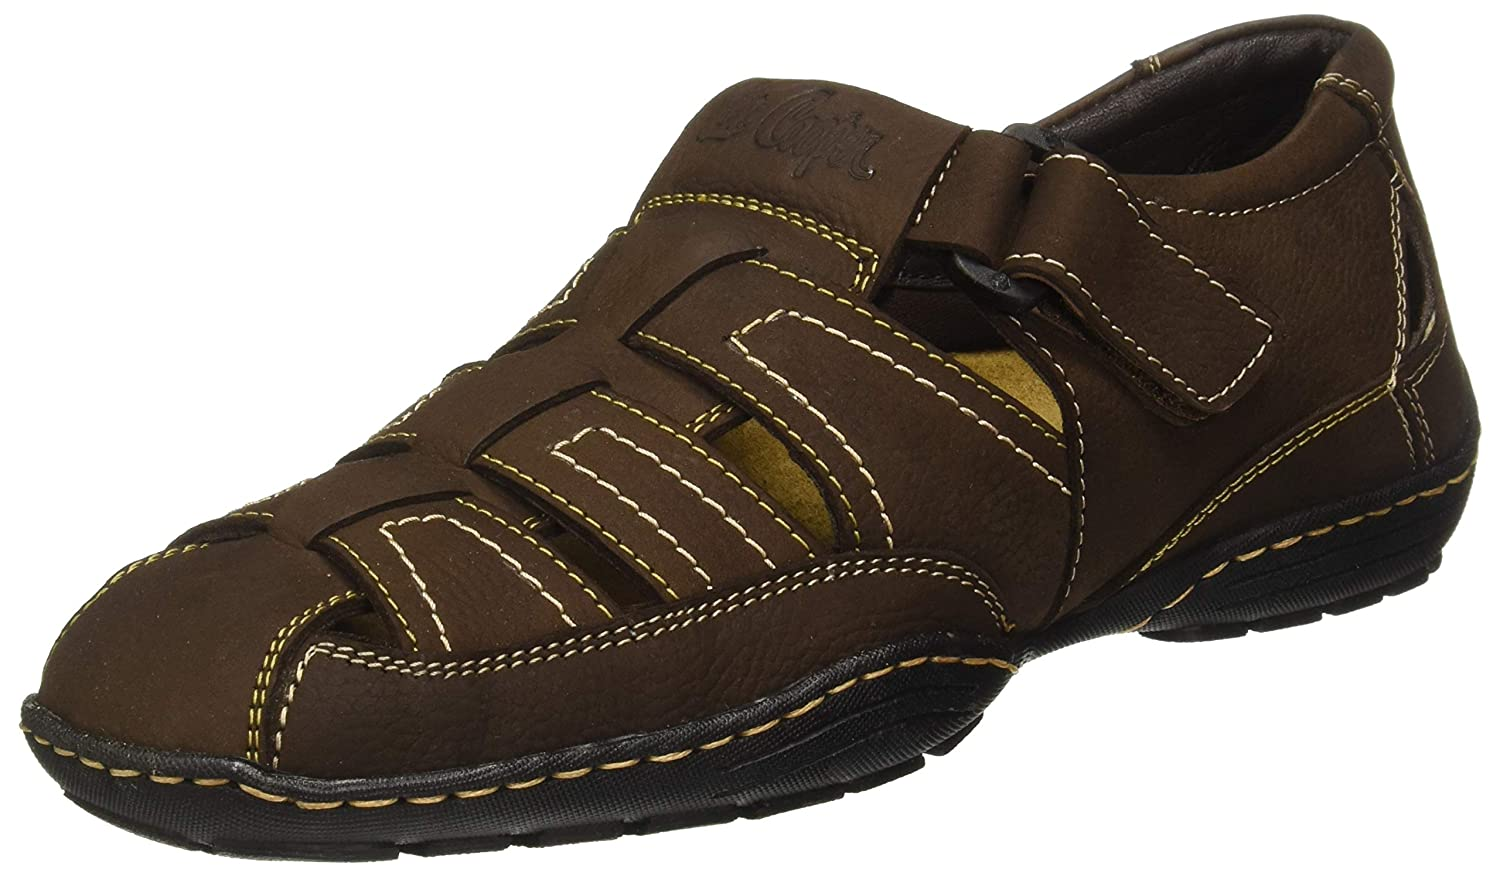 43f8e953c09f28 Lee Cooper Men s Sandals  Buy Online at Low Prices in India - Amazon.in